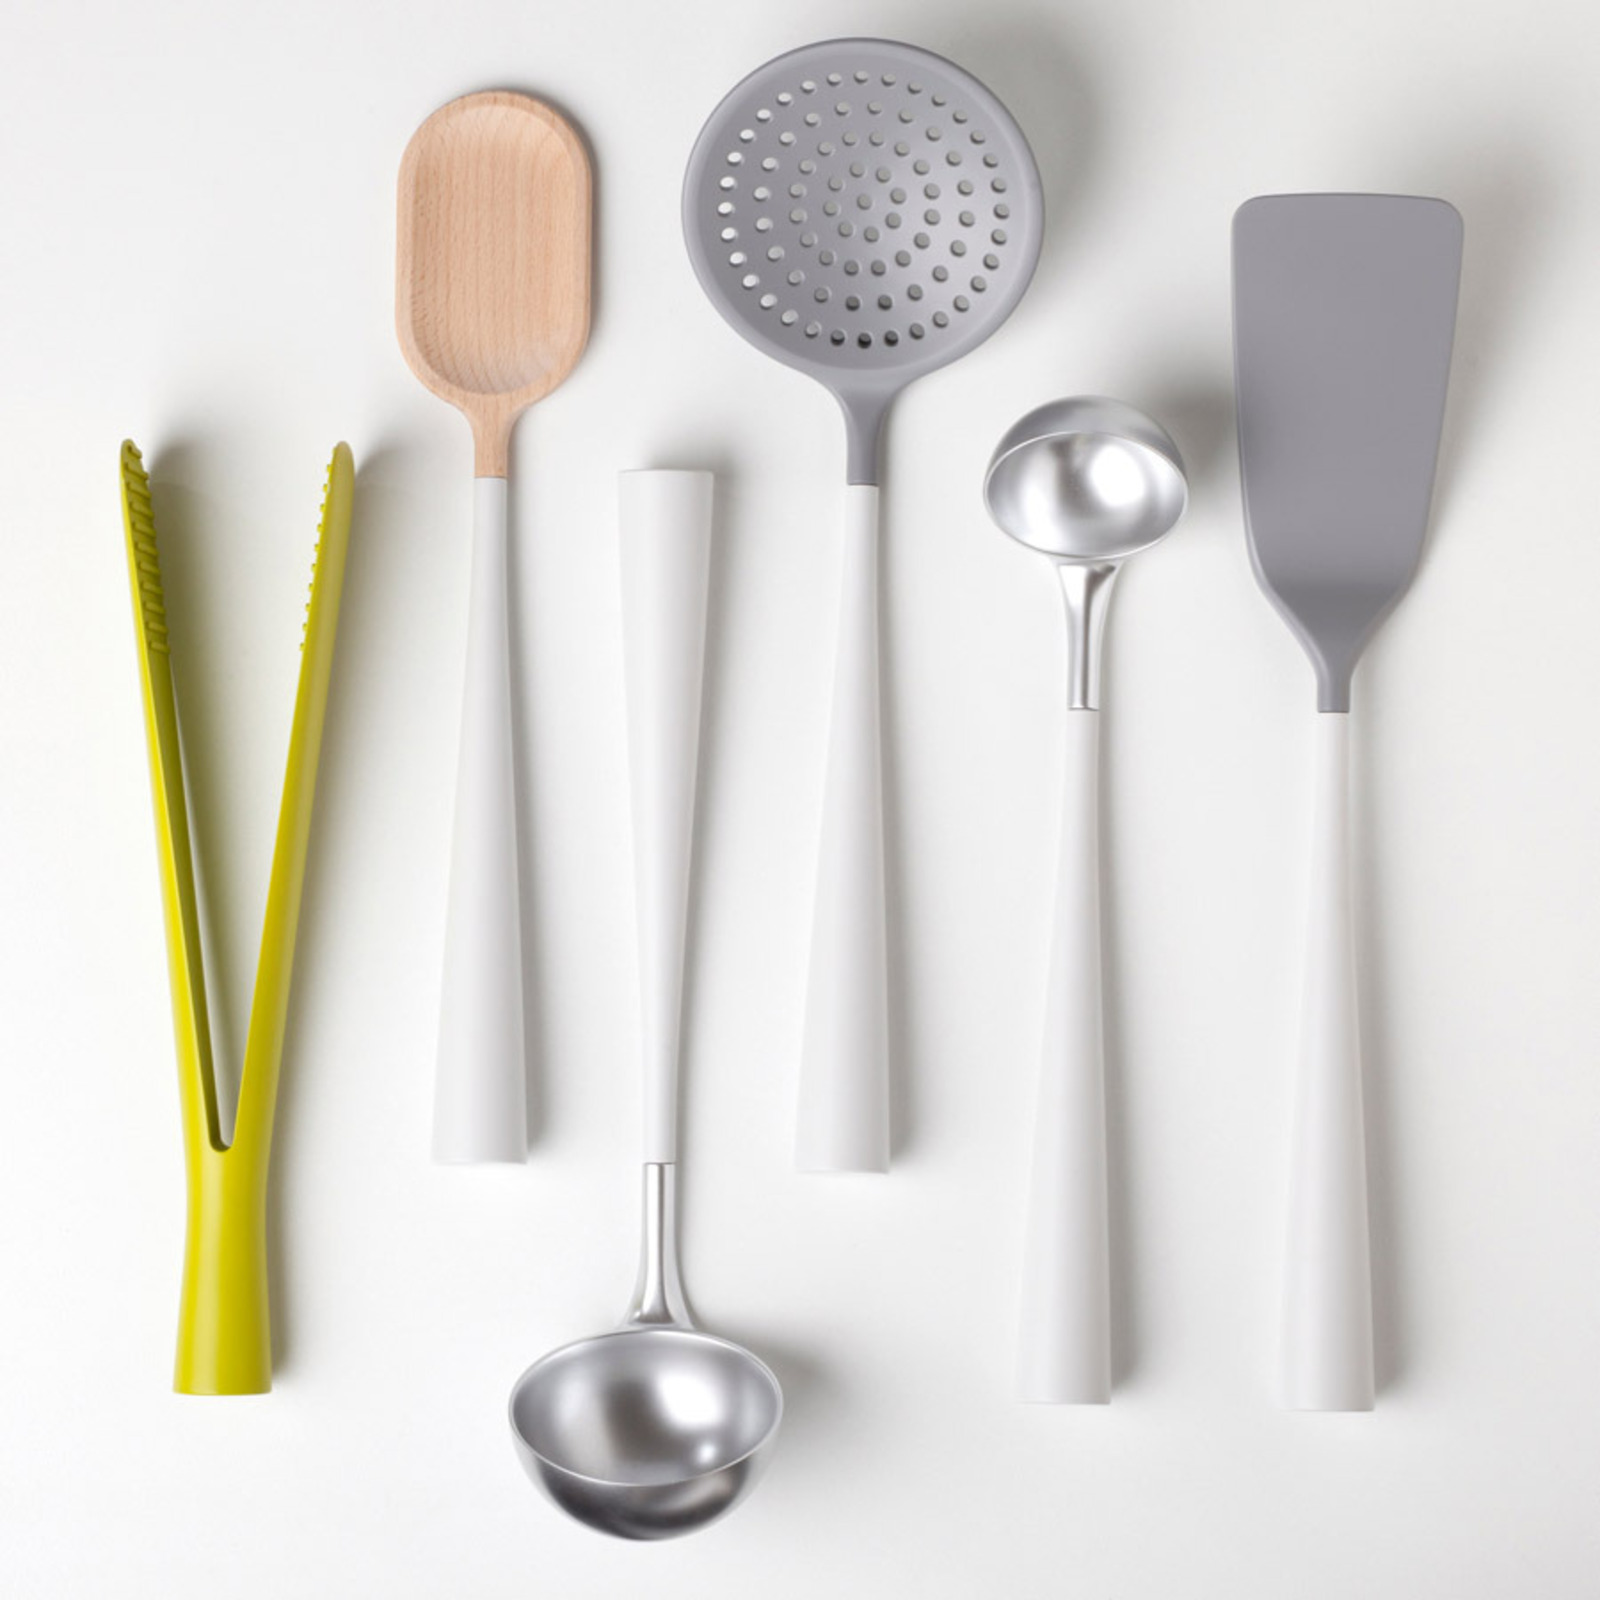 Smool Kitchen Tools - Cool Hunting